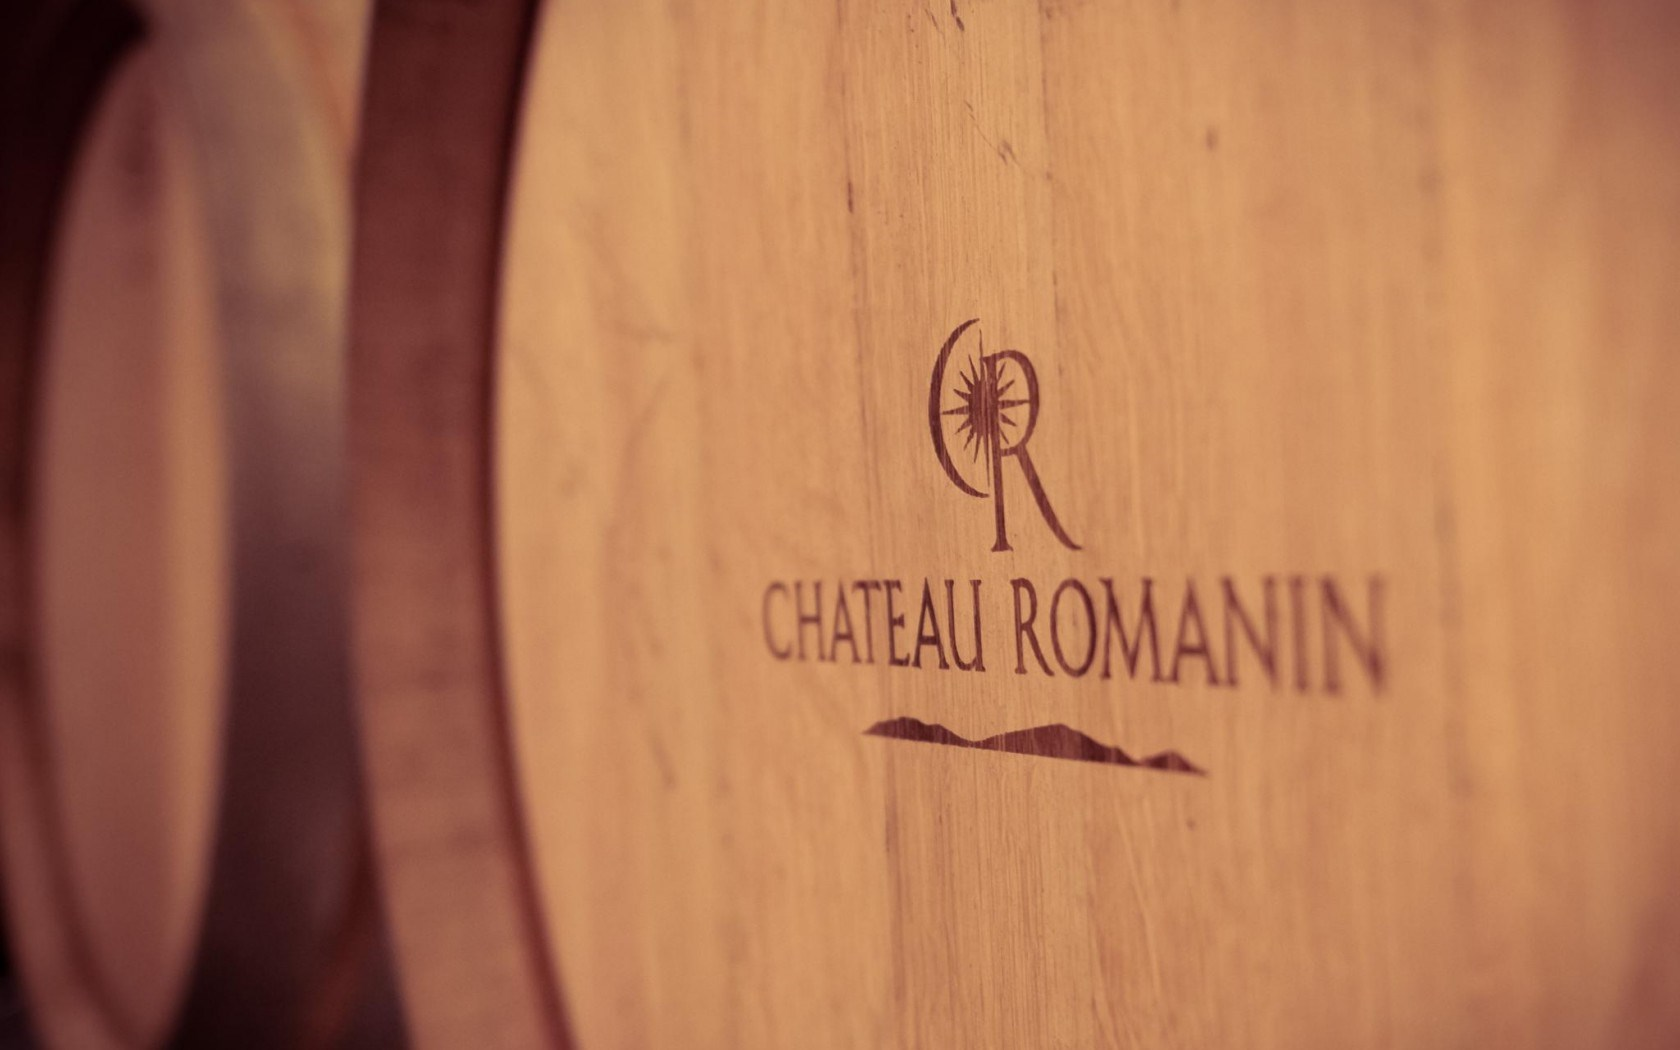 Chateau Romanin Wine Barrel